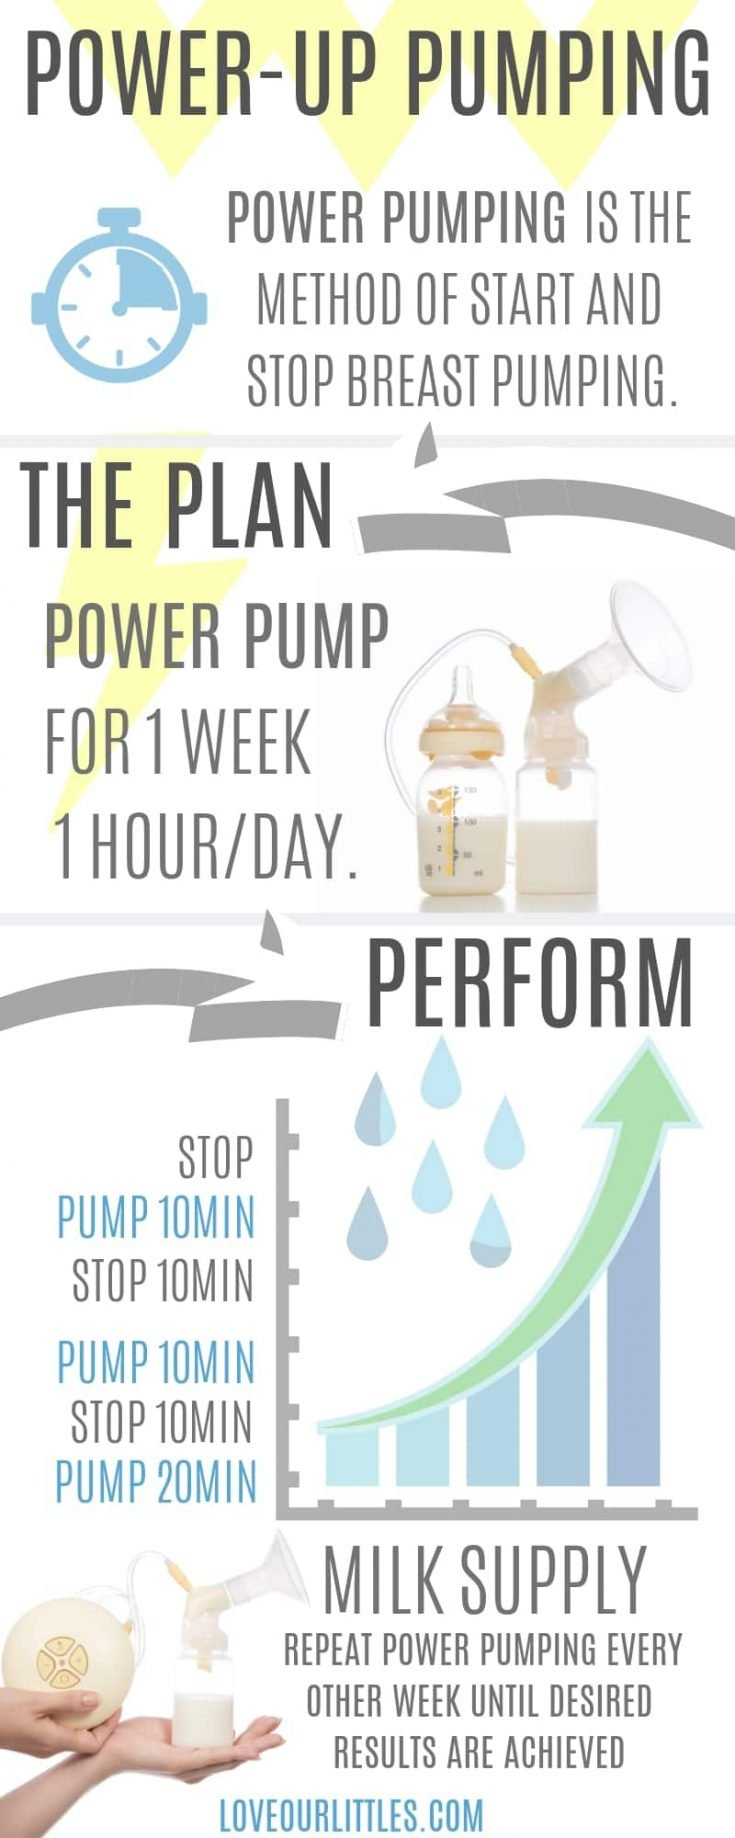 How to power pump, step by step guide. Power pumping improves the supply and demand market of your breast milk supply.